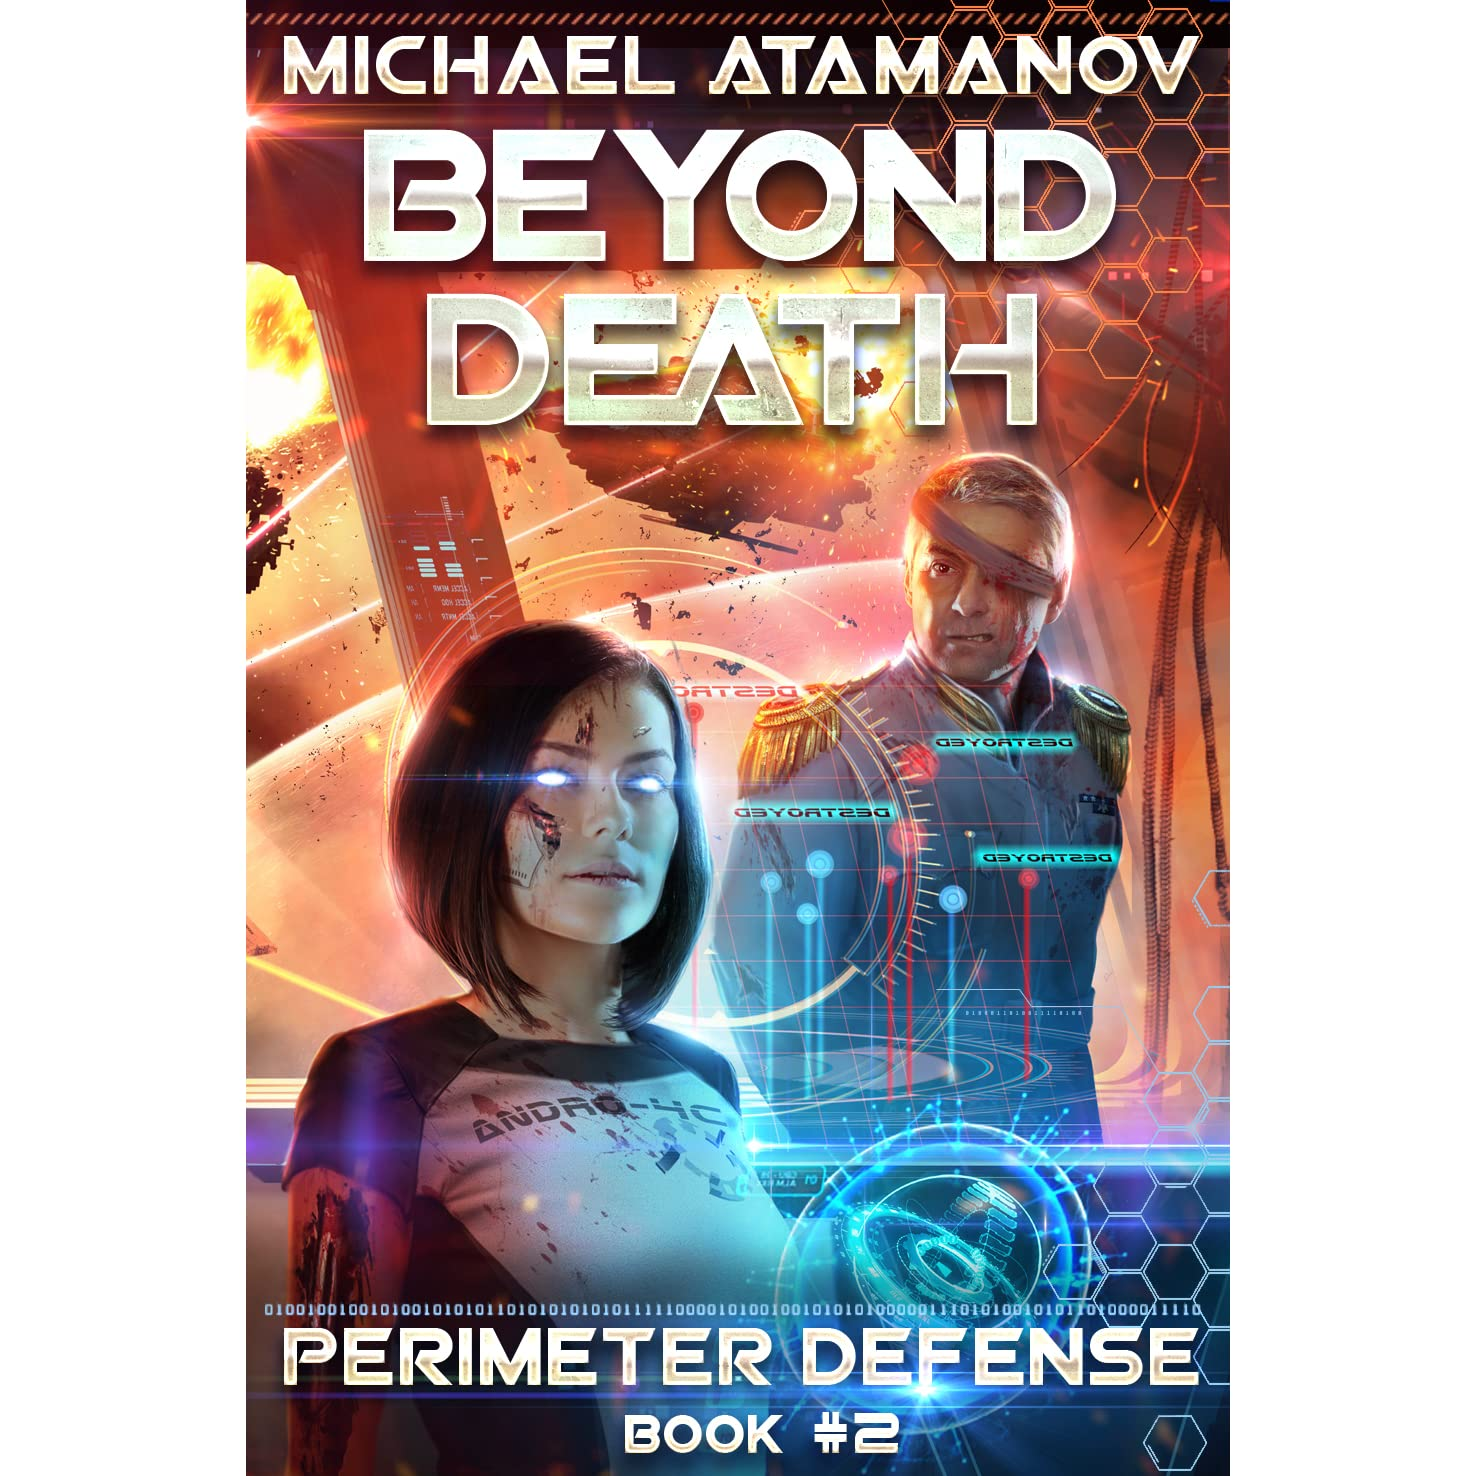 Beyond Death (Perimeter Defense #2) - Michael Atamanov